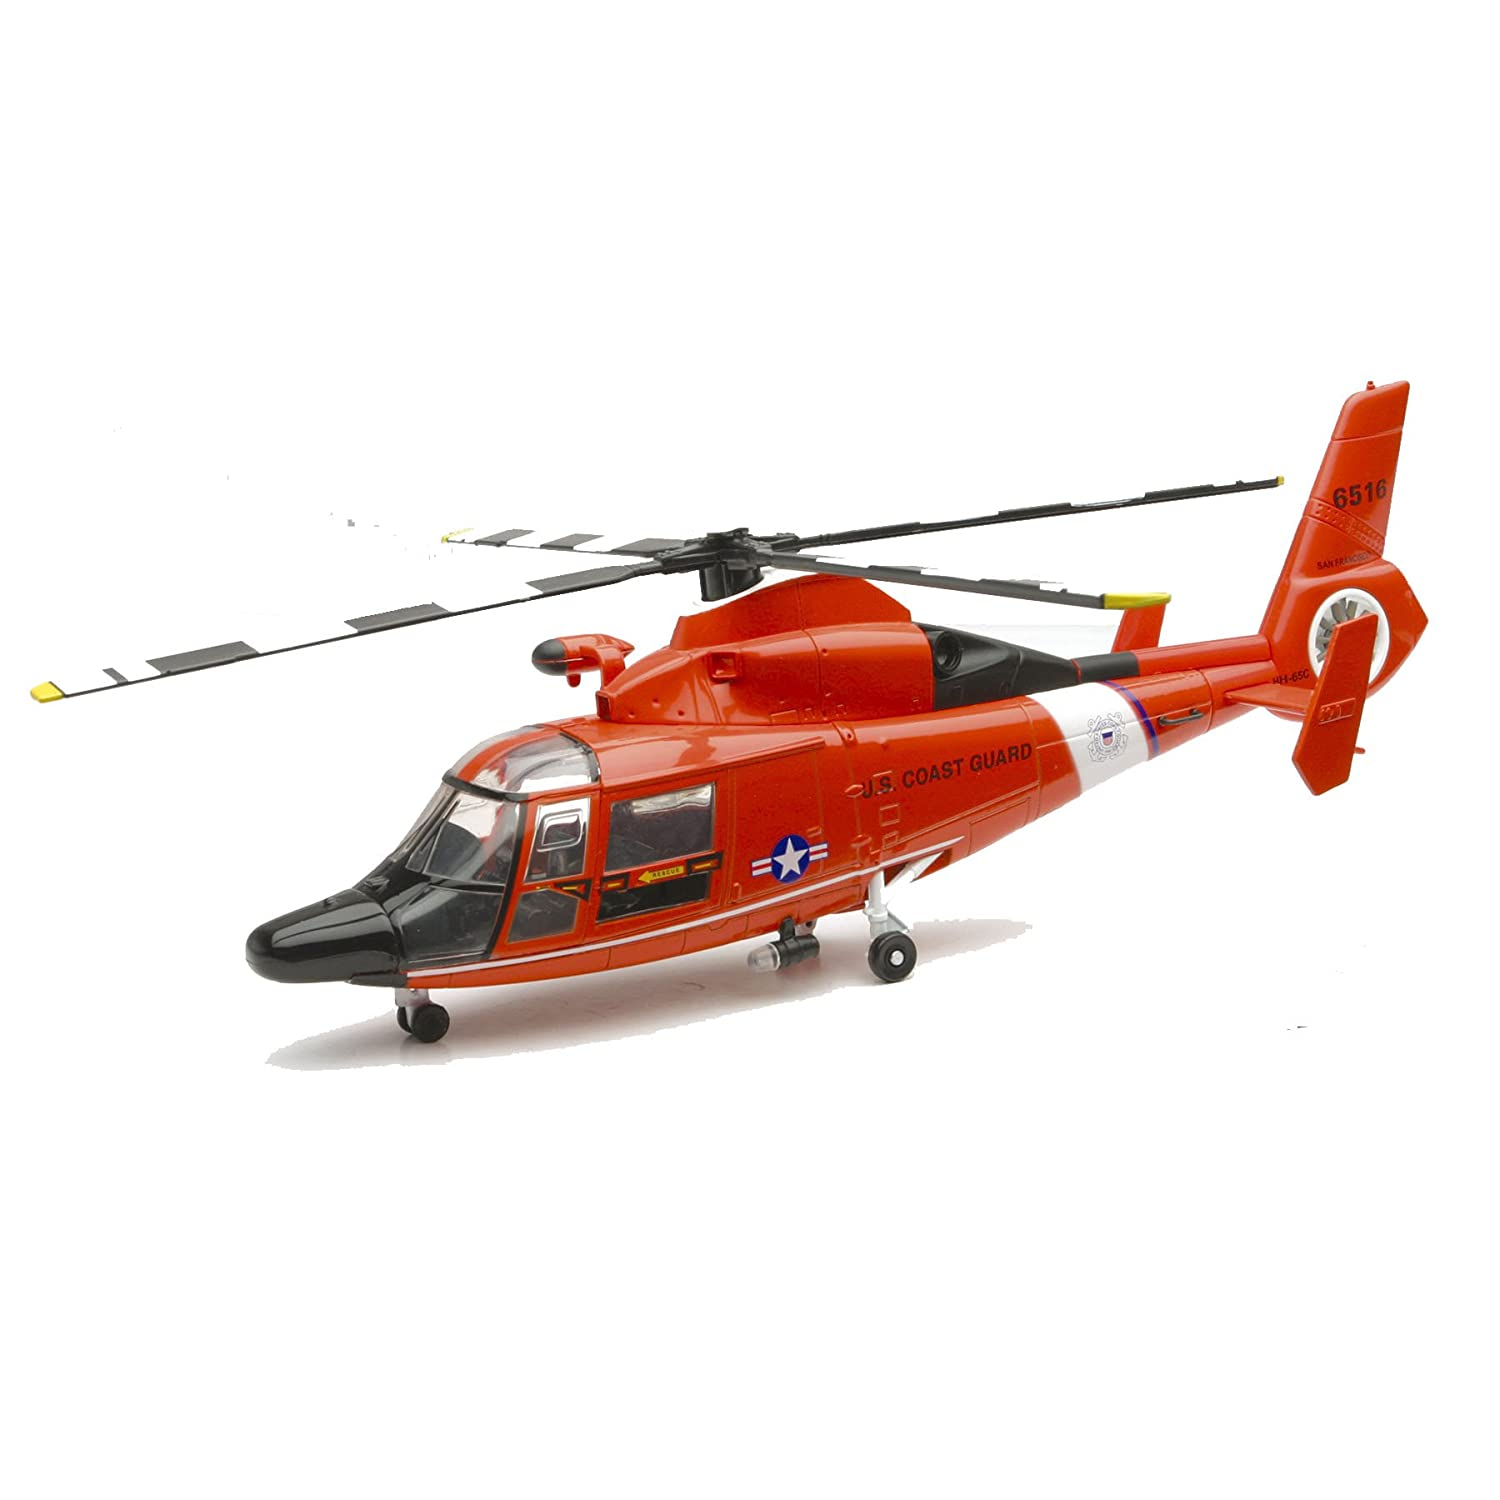 NewRay 1/48 Scale Diecast US Coast Guard Eurocopter HH-65C ...